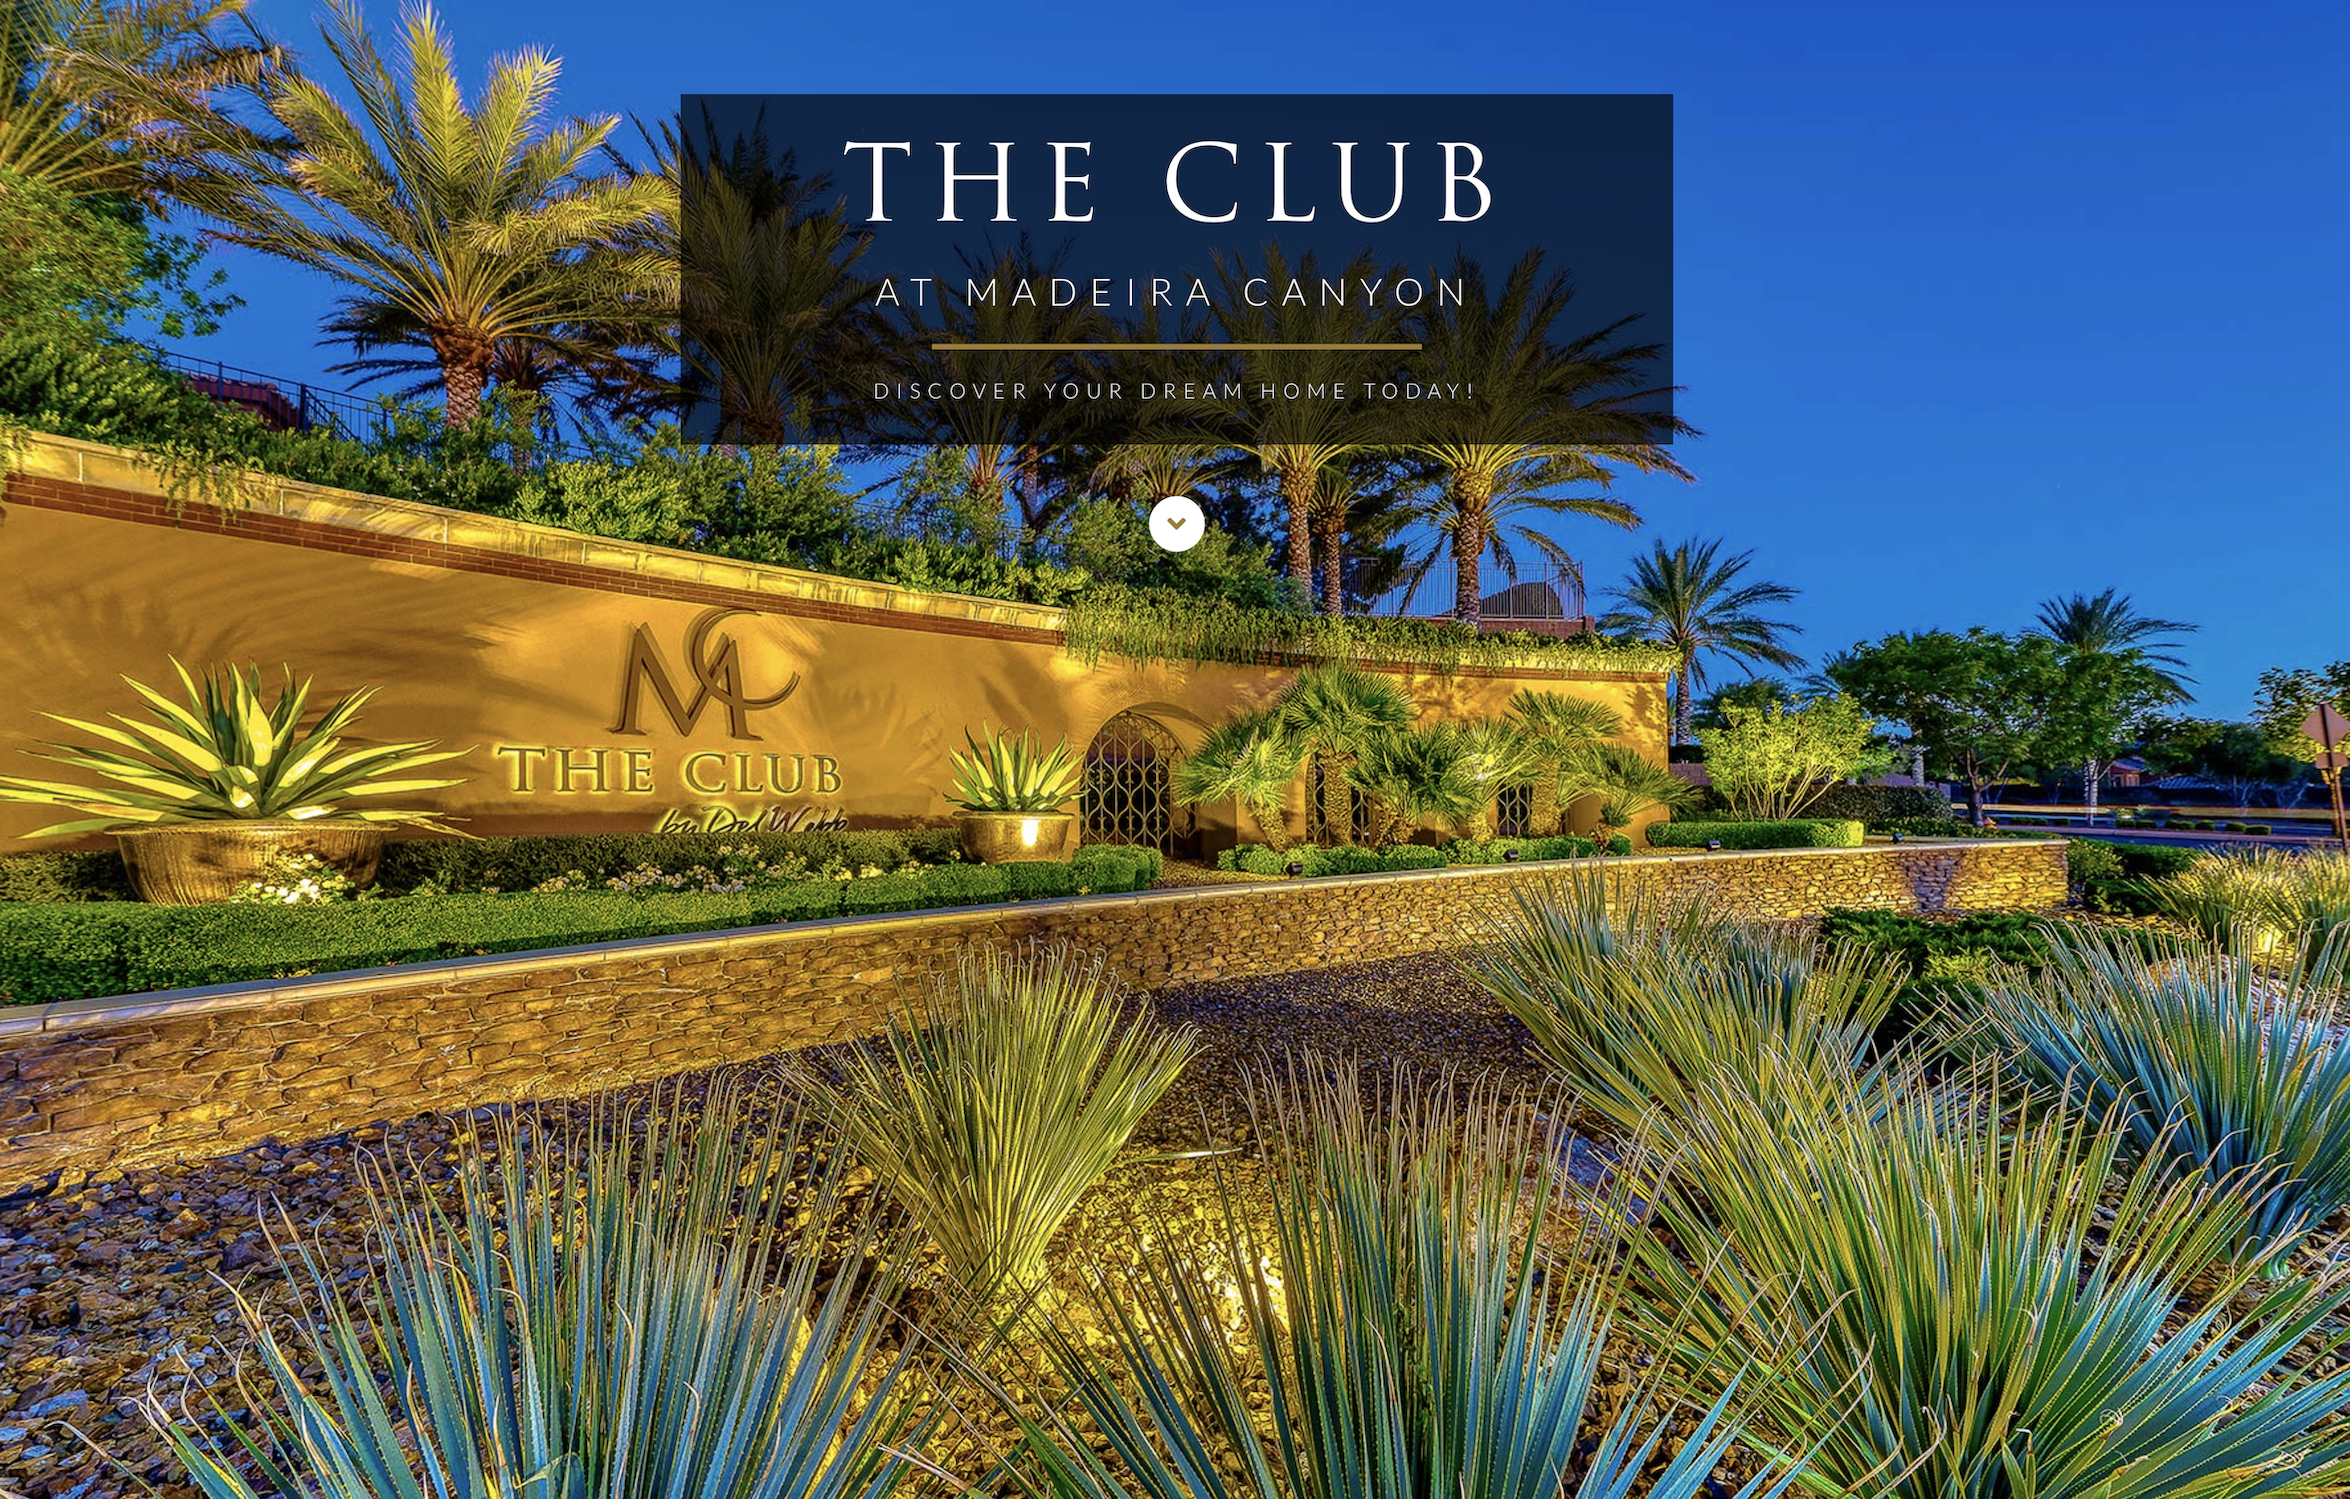 The Club at Madeira Canyon